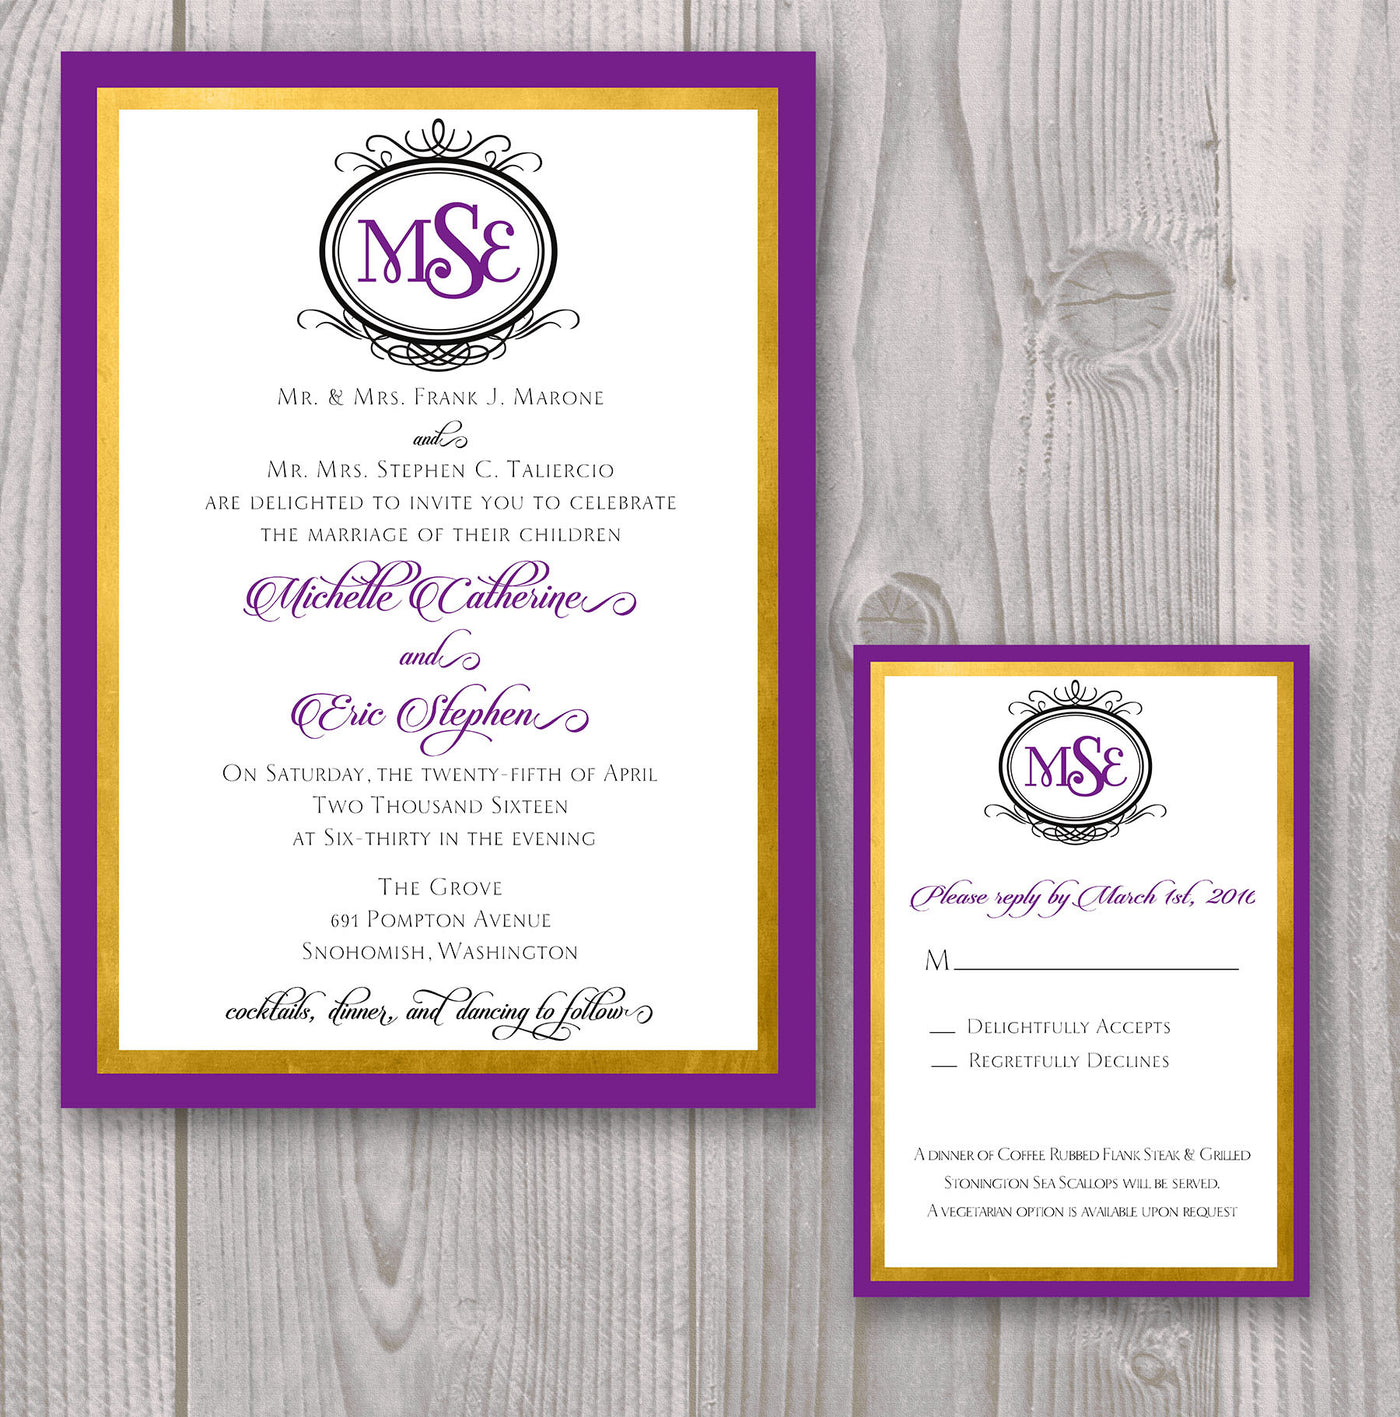 Monogram Wedding Invitation The Papers Edge